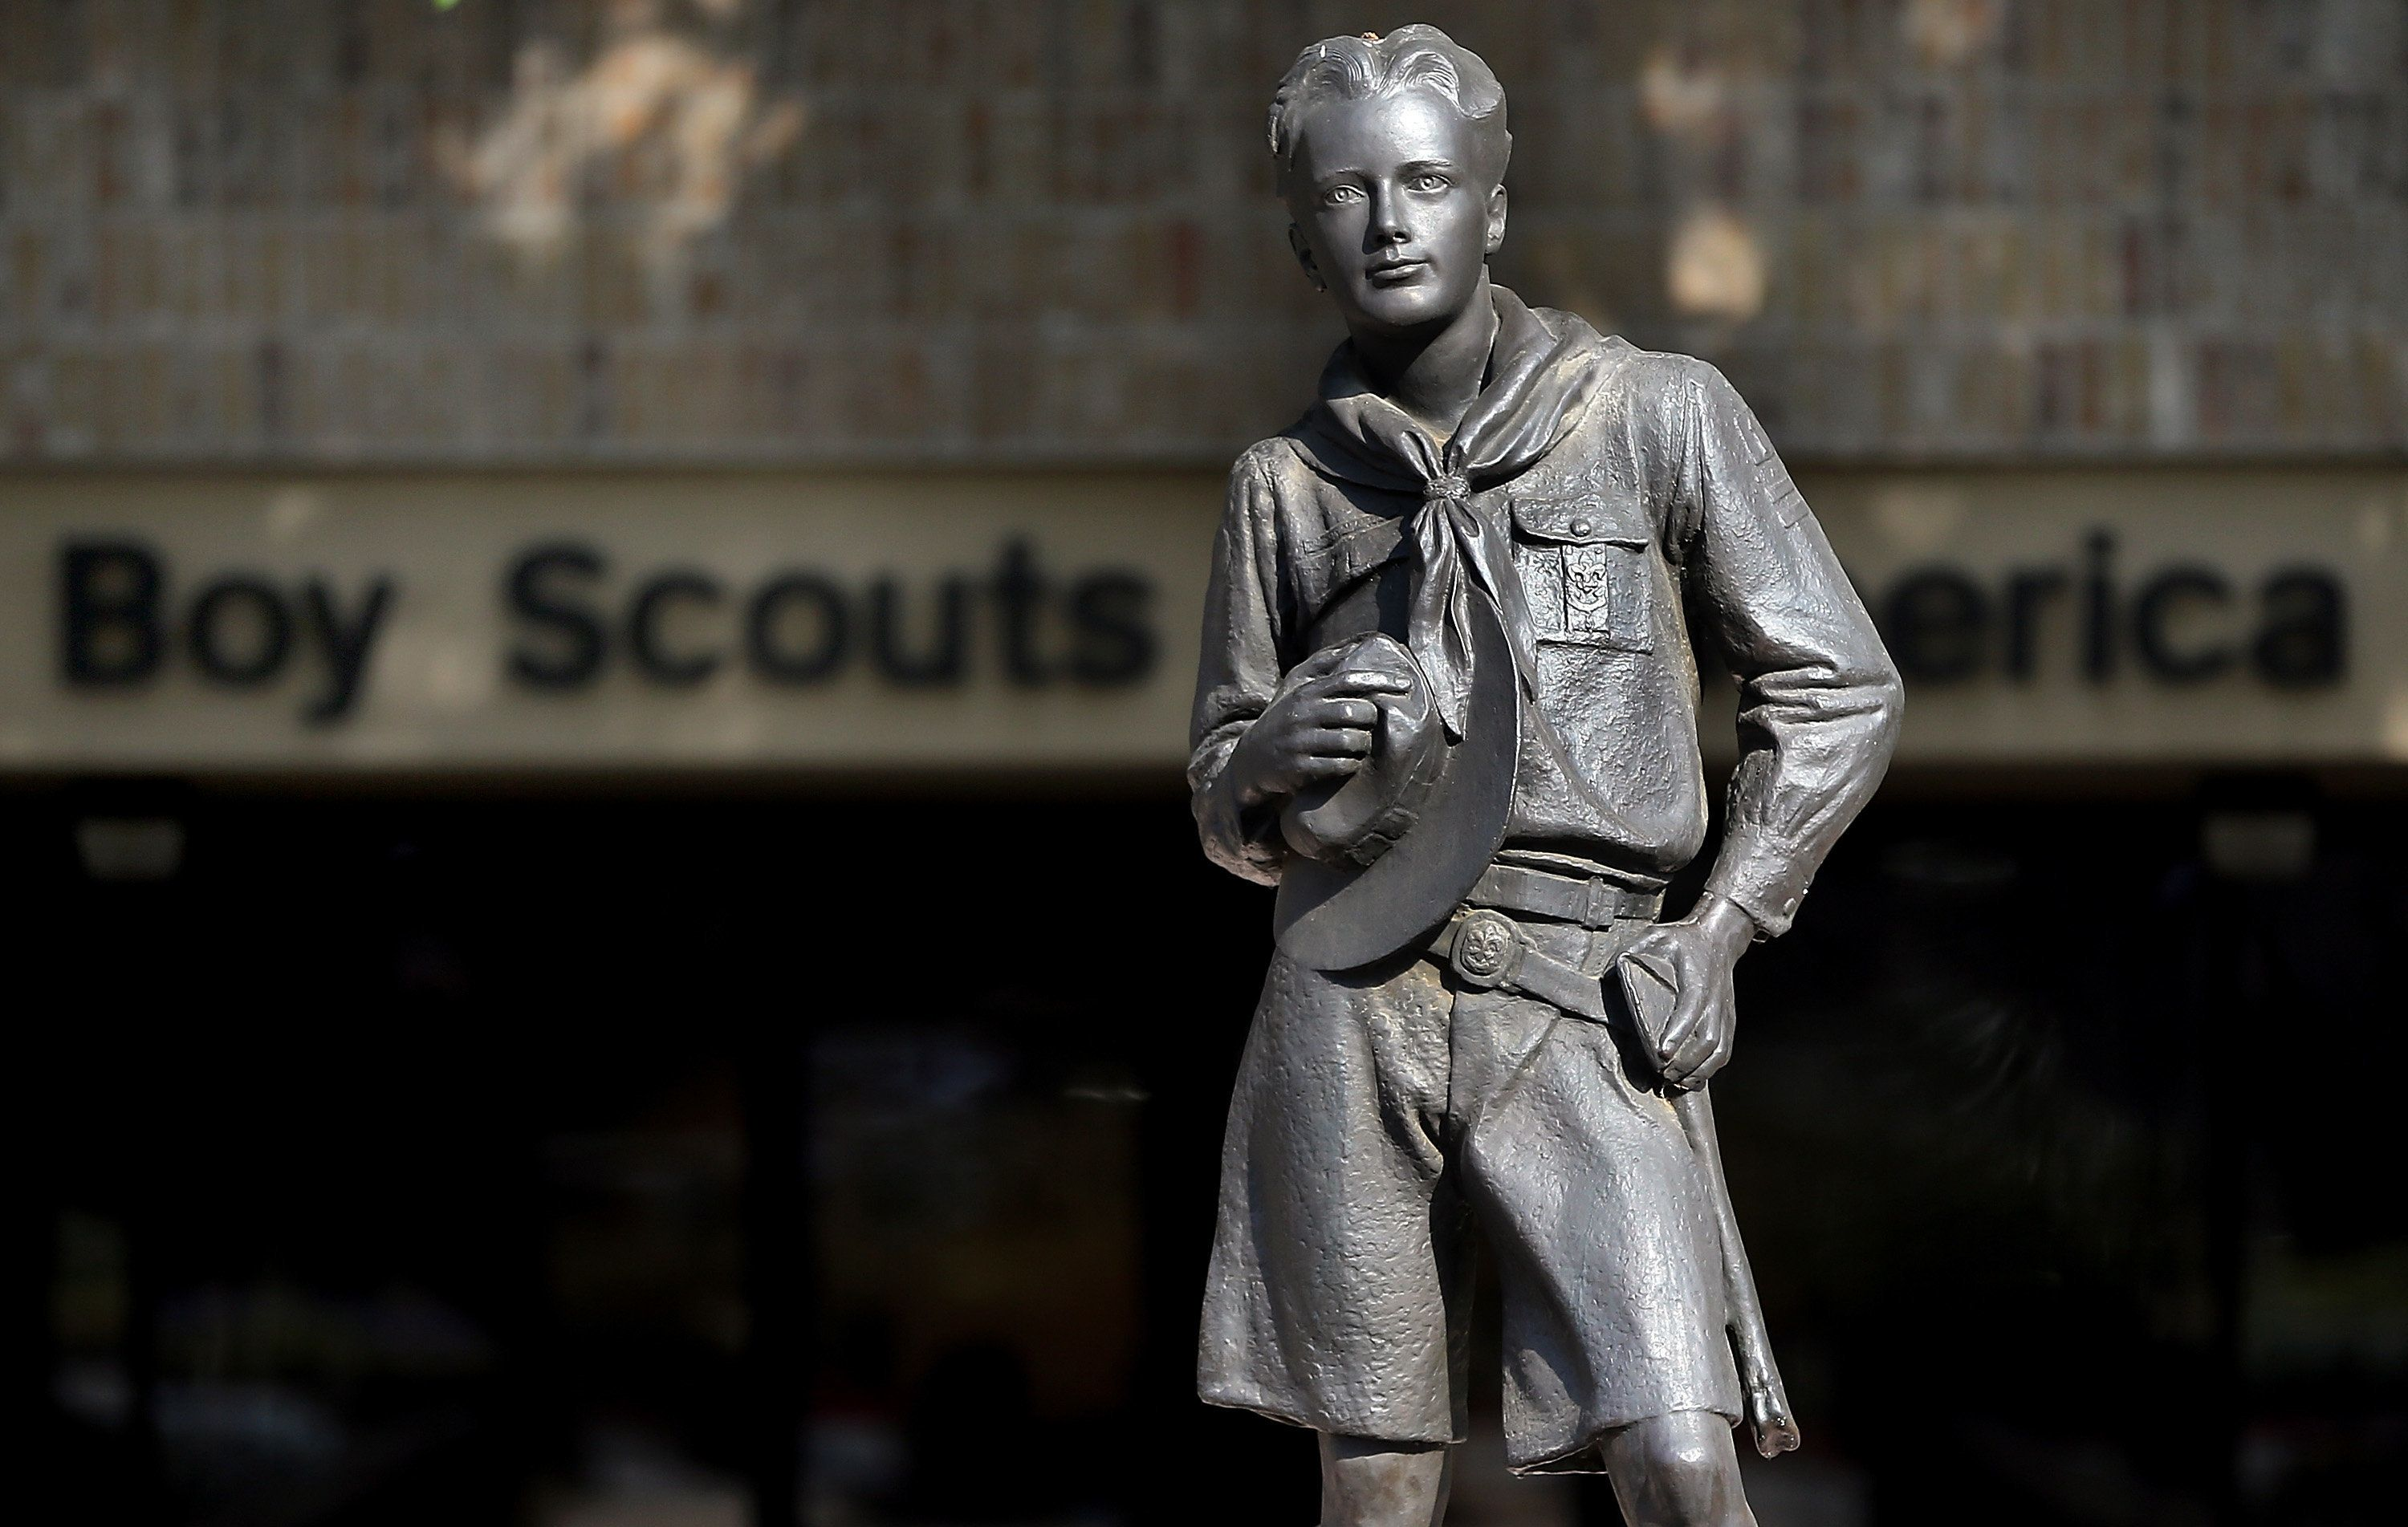 Boy Scouts of America announced on Wednesday plans to allow girls to join its iconic programs.